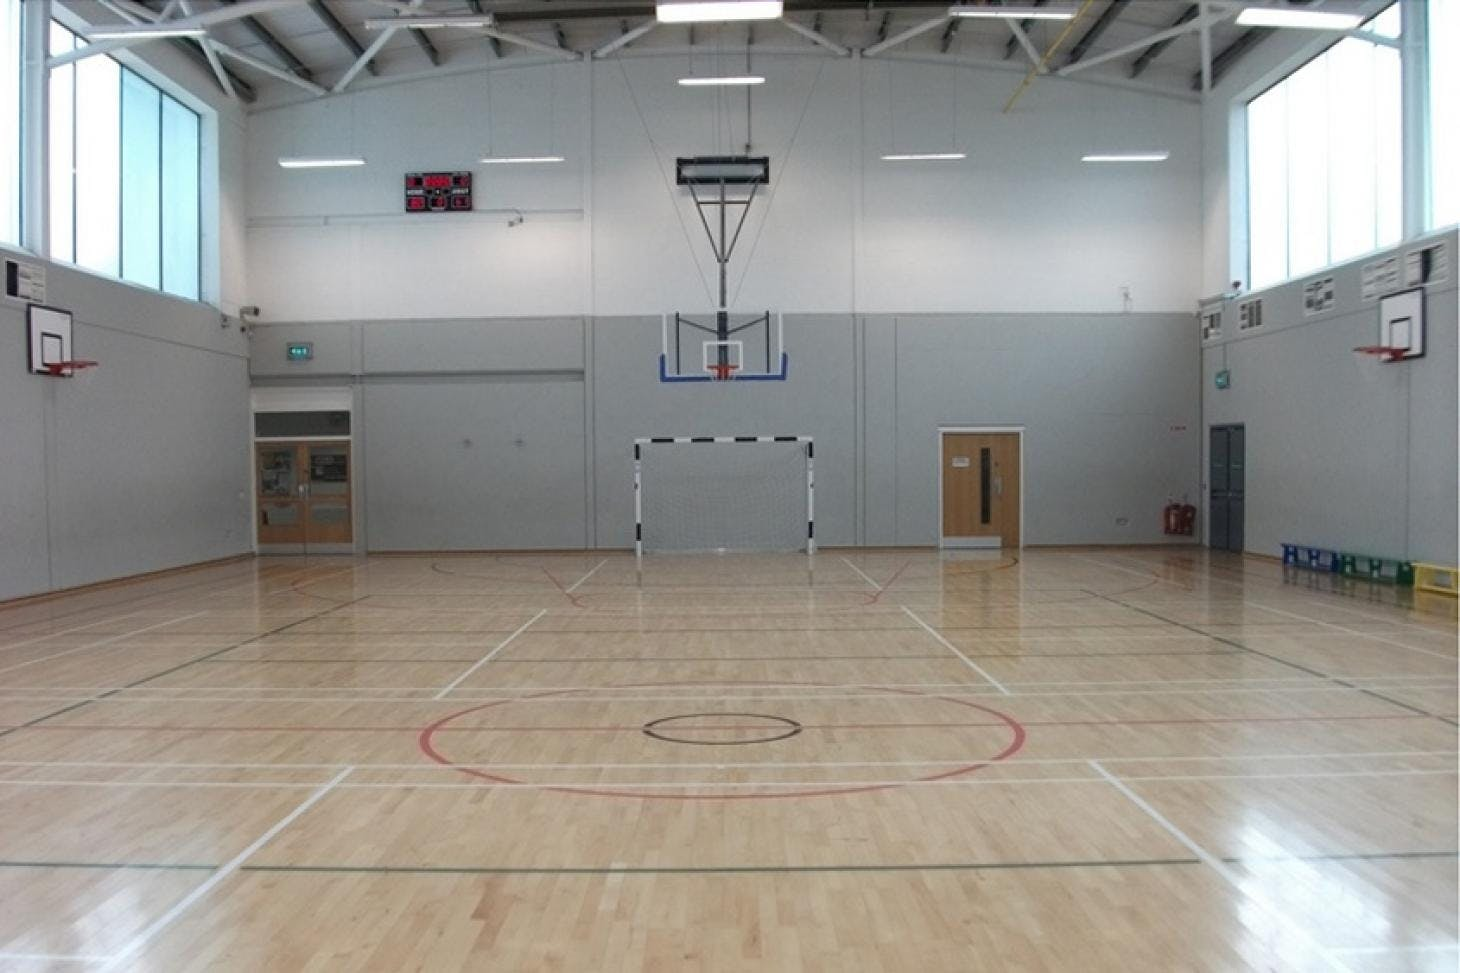 Mountview Youth & Community Centre Indoor | Hard badminton court